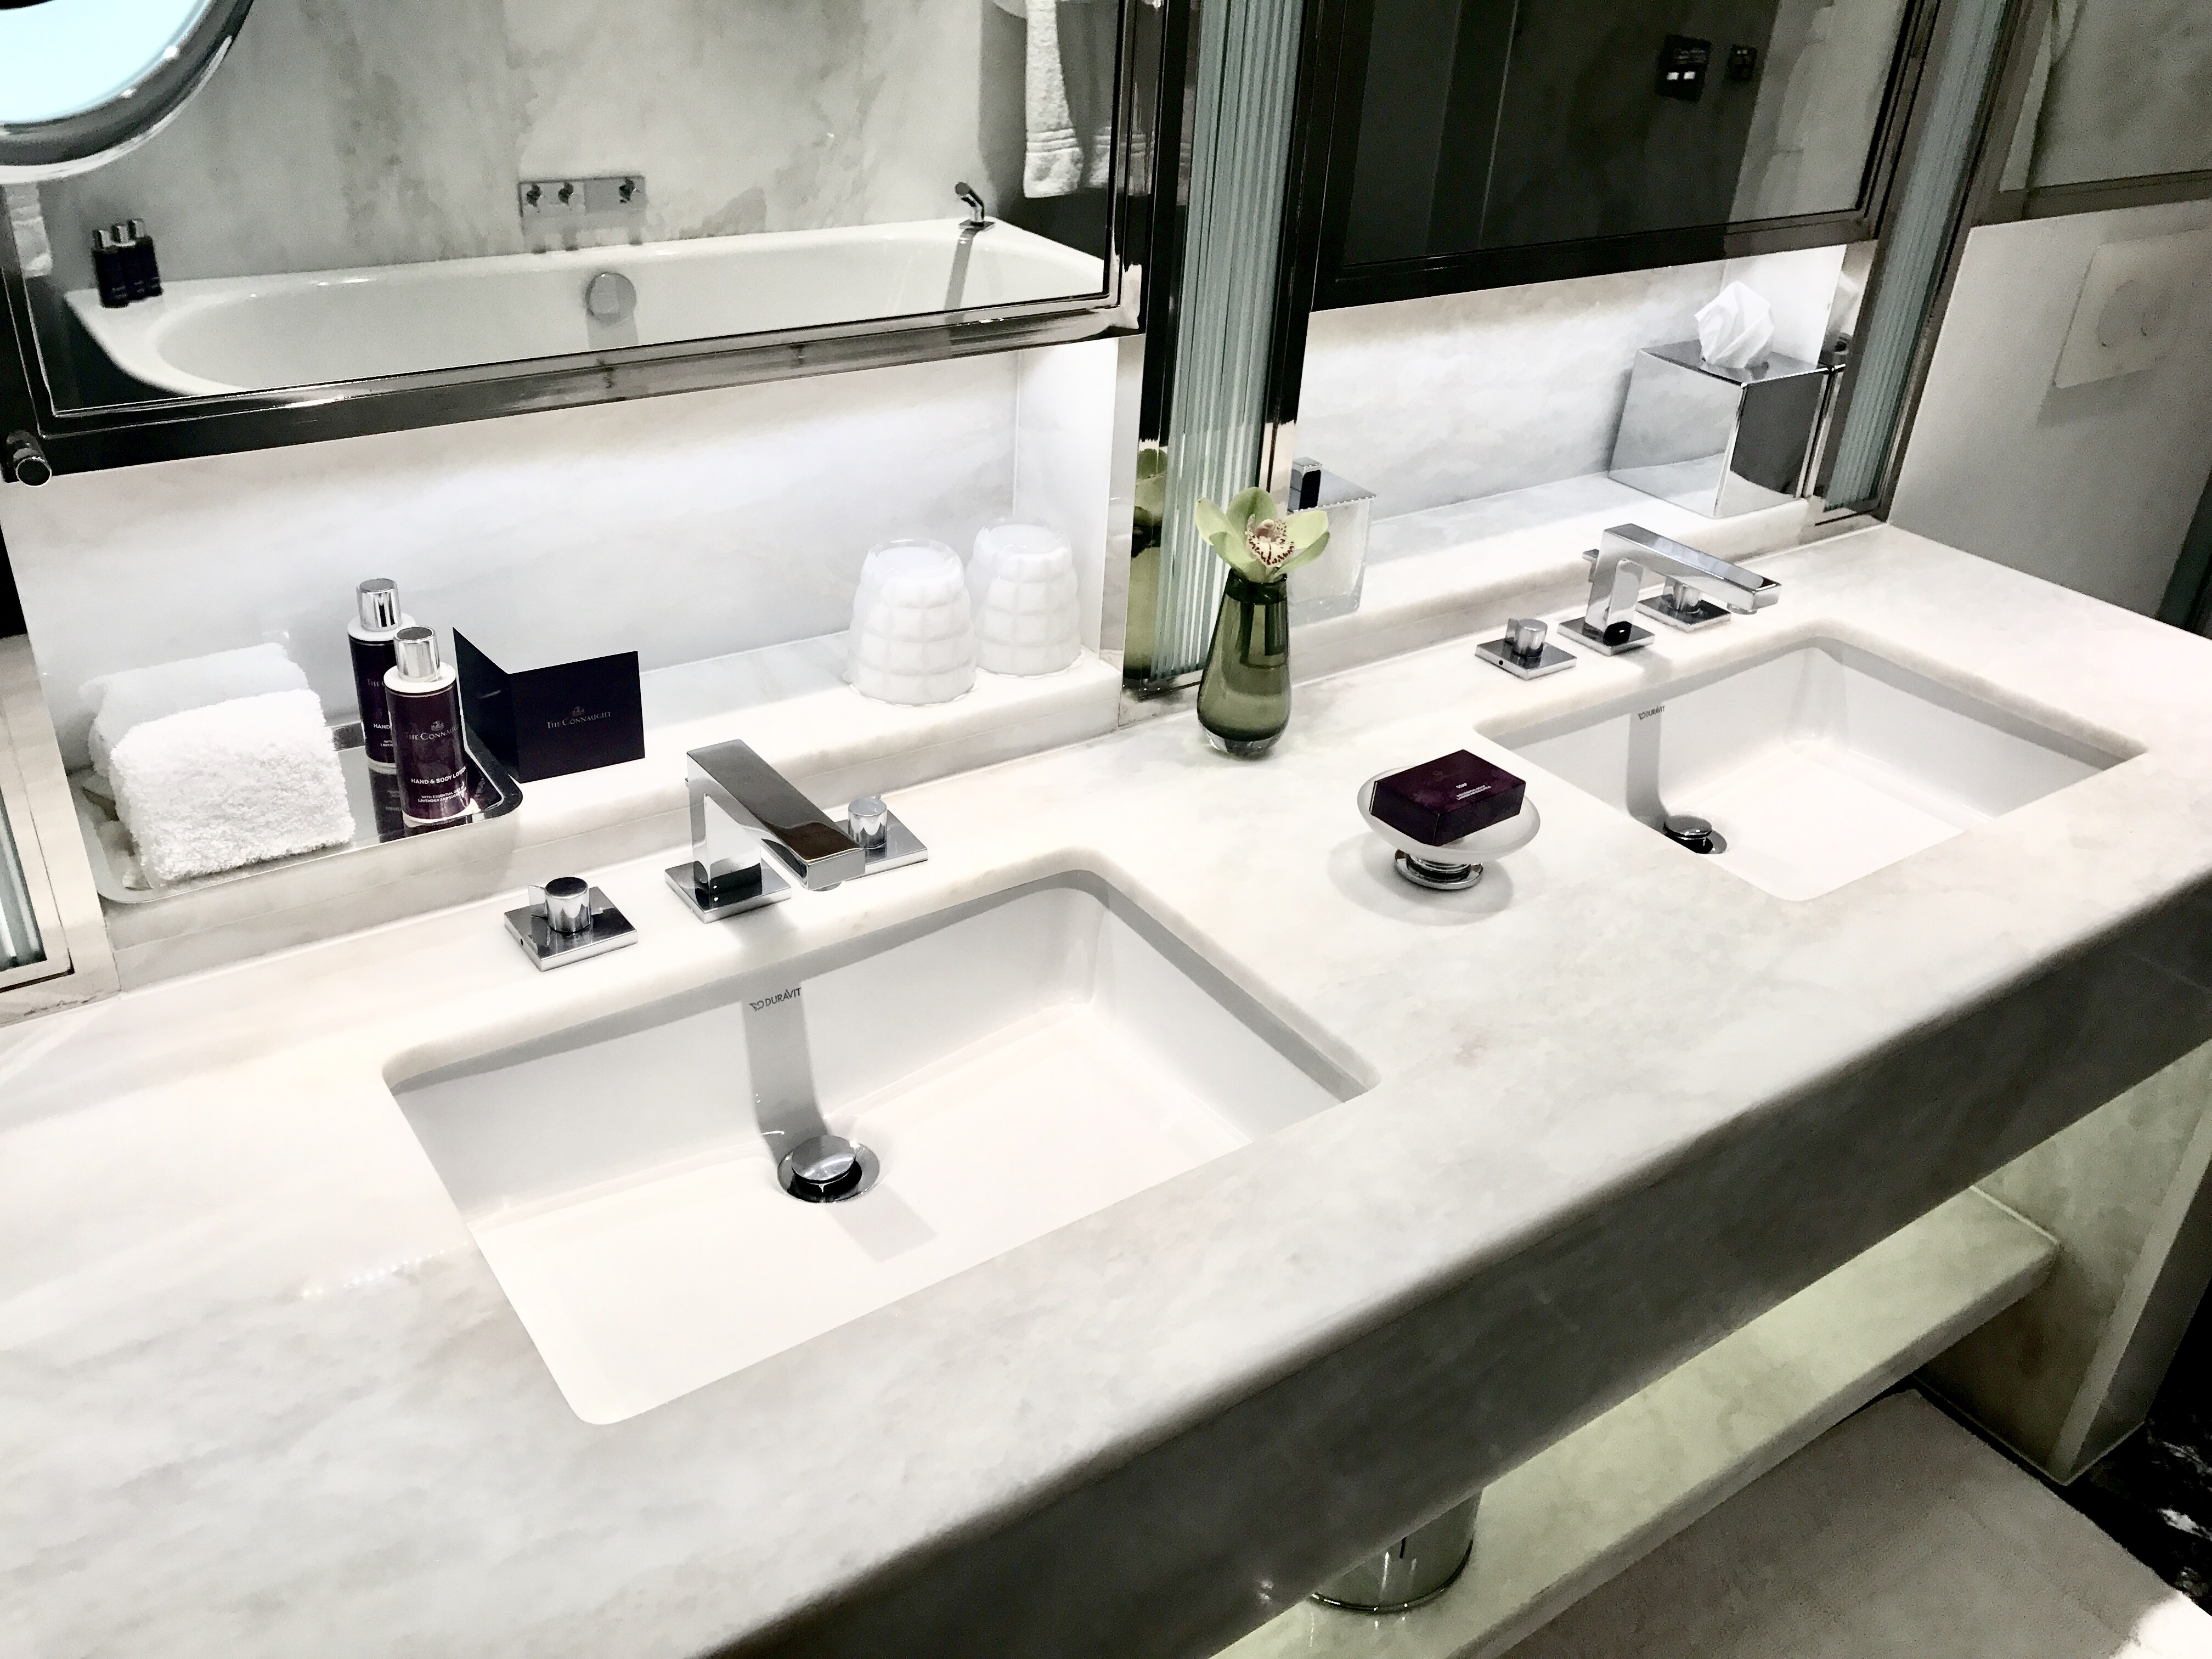 Bathroom at the contemporary section of the Connaught hotel